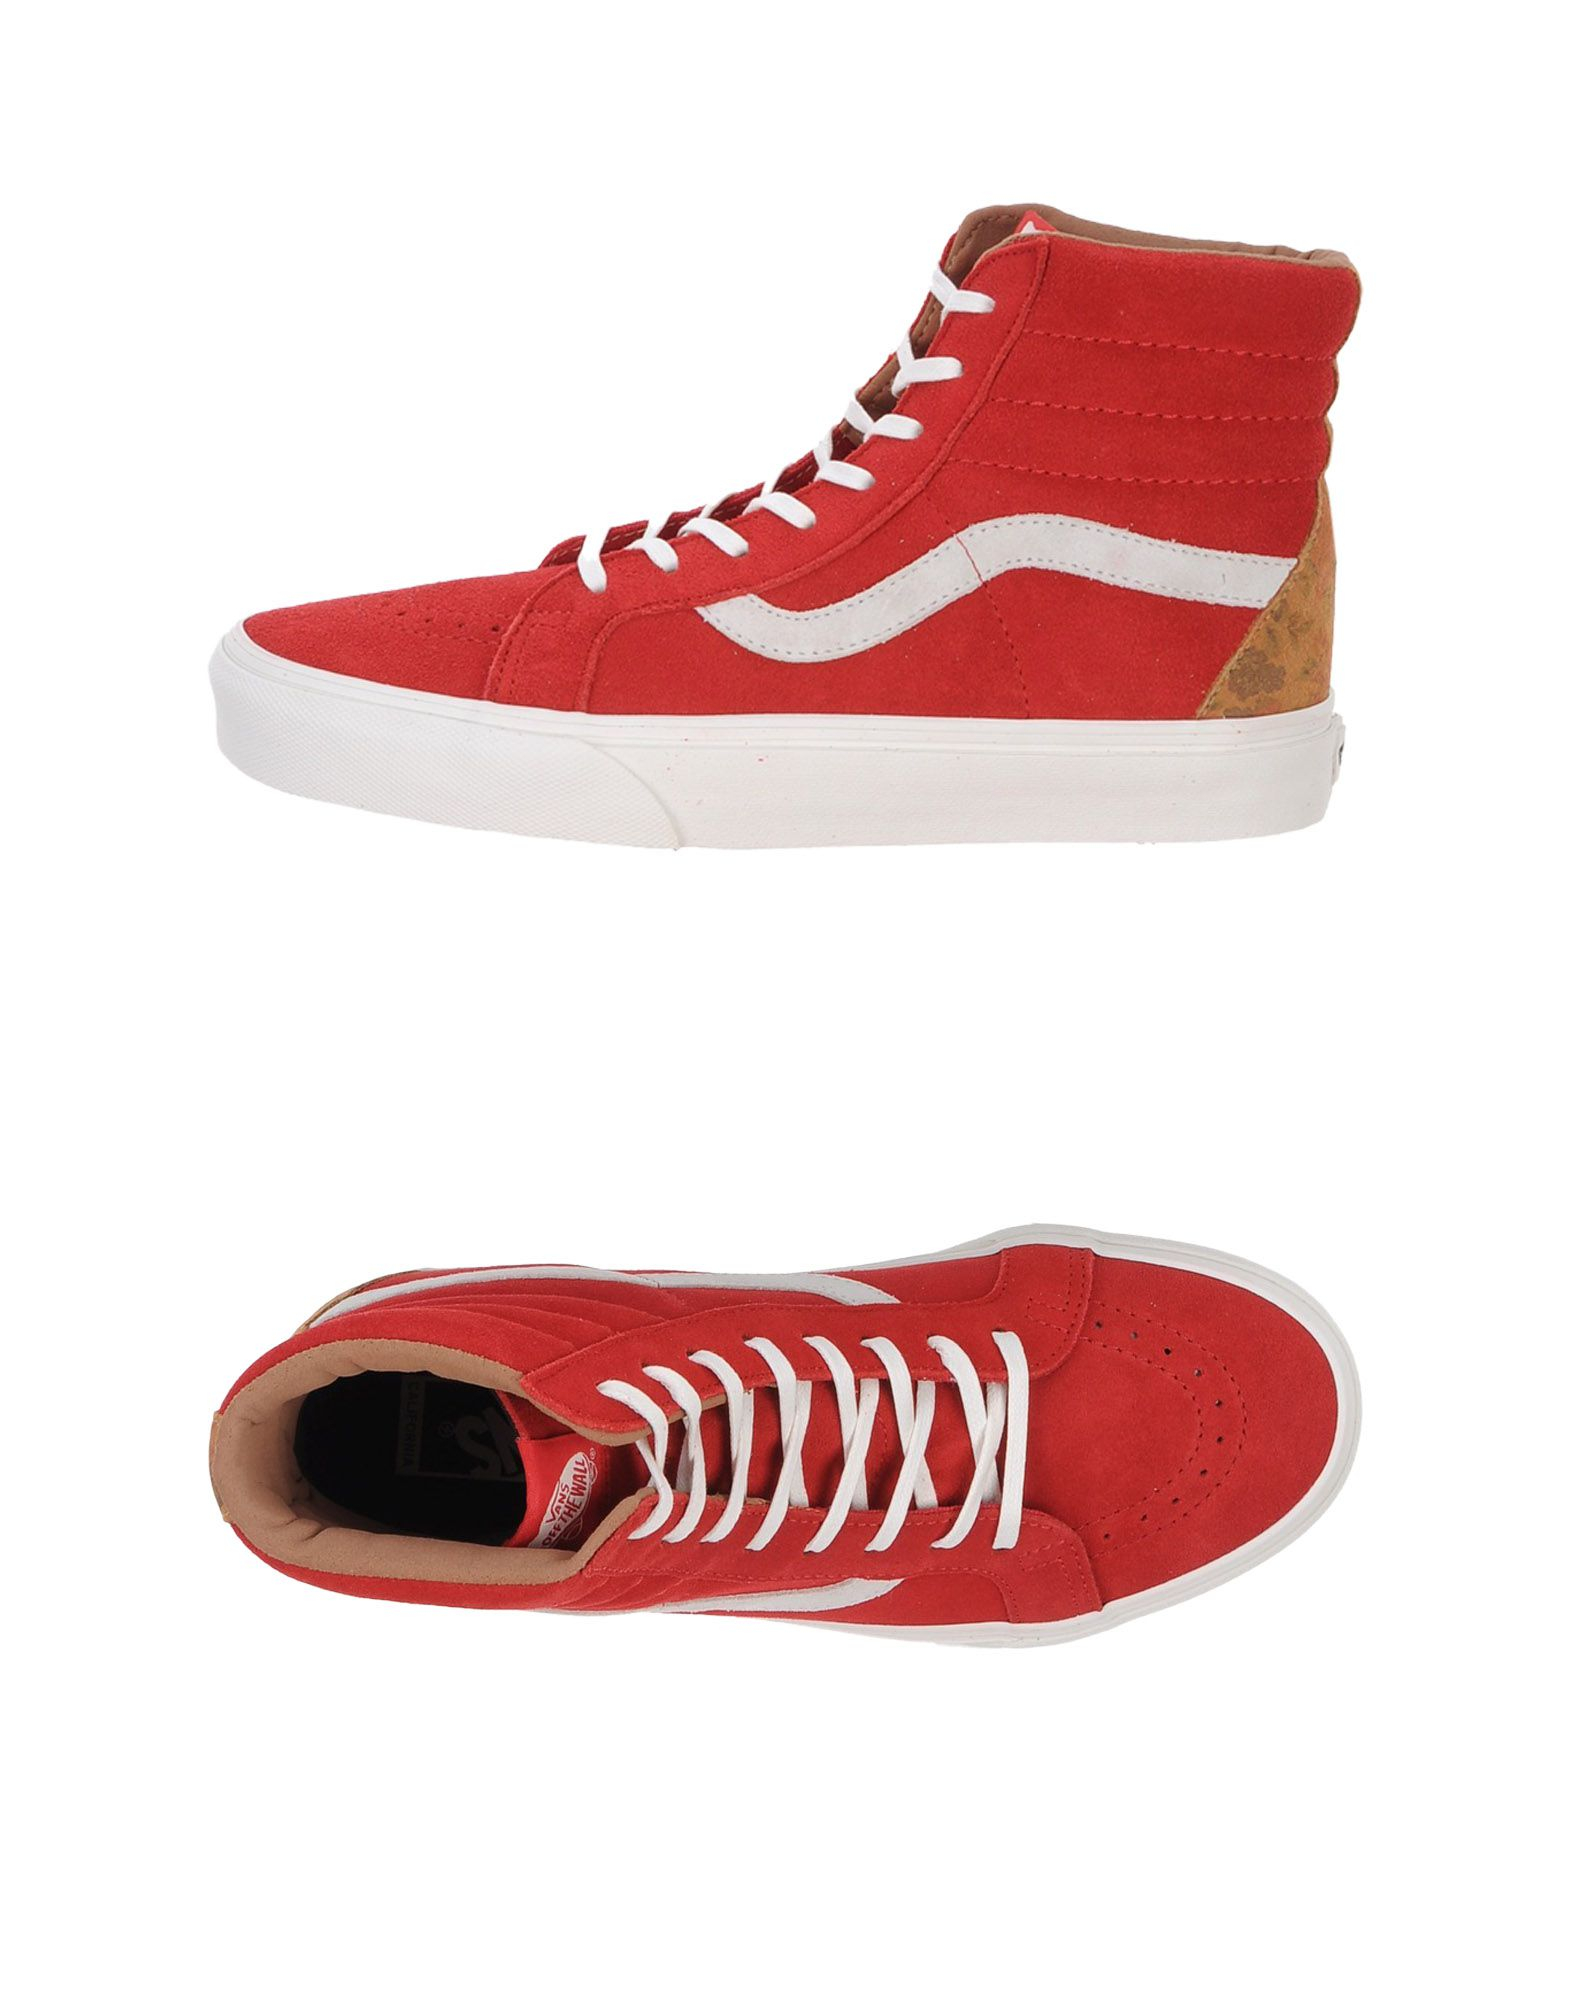 Vans High-tops & Sneakers in Red for Men | Lyst